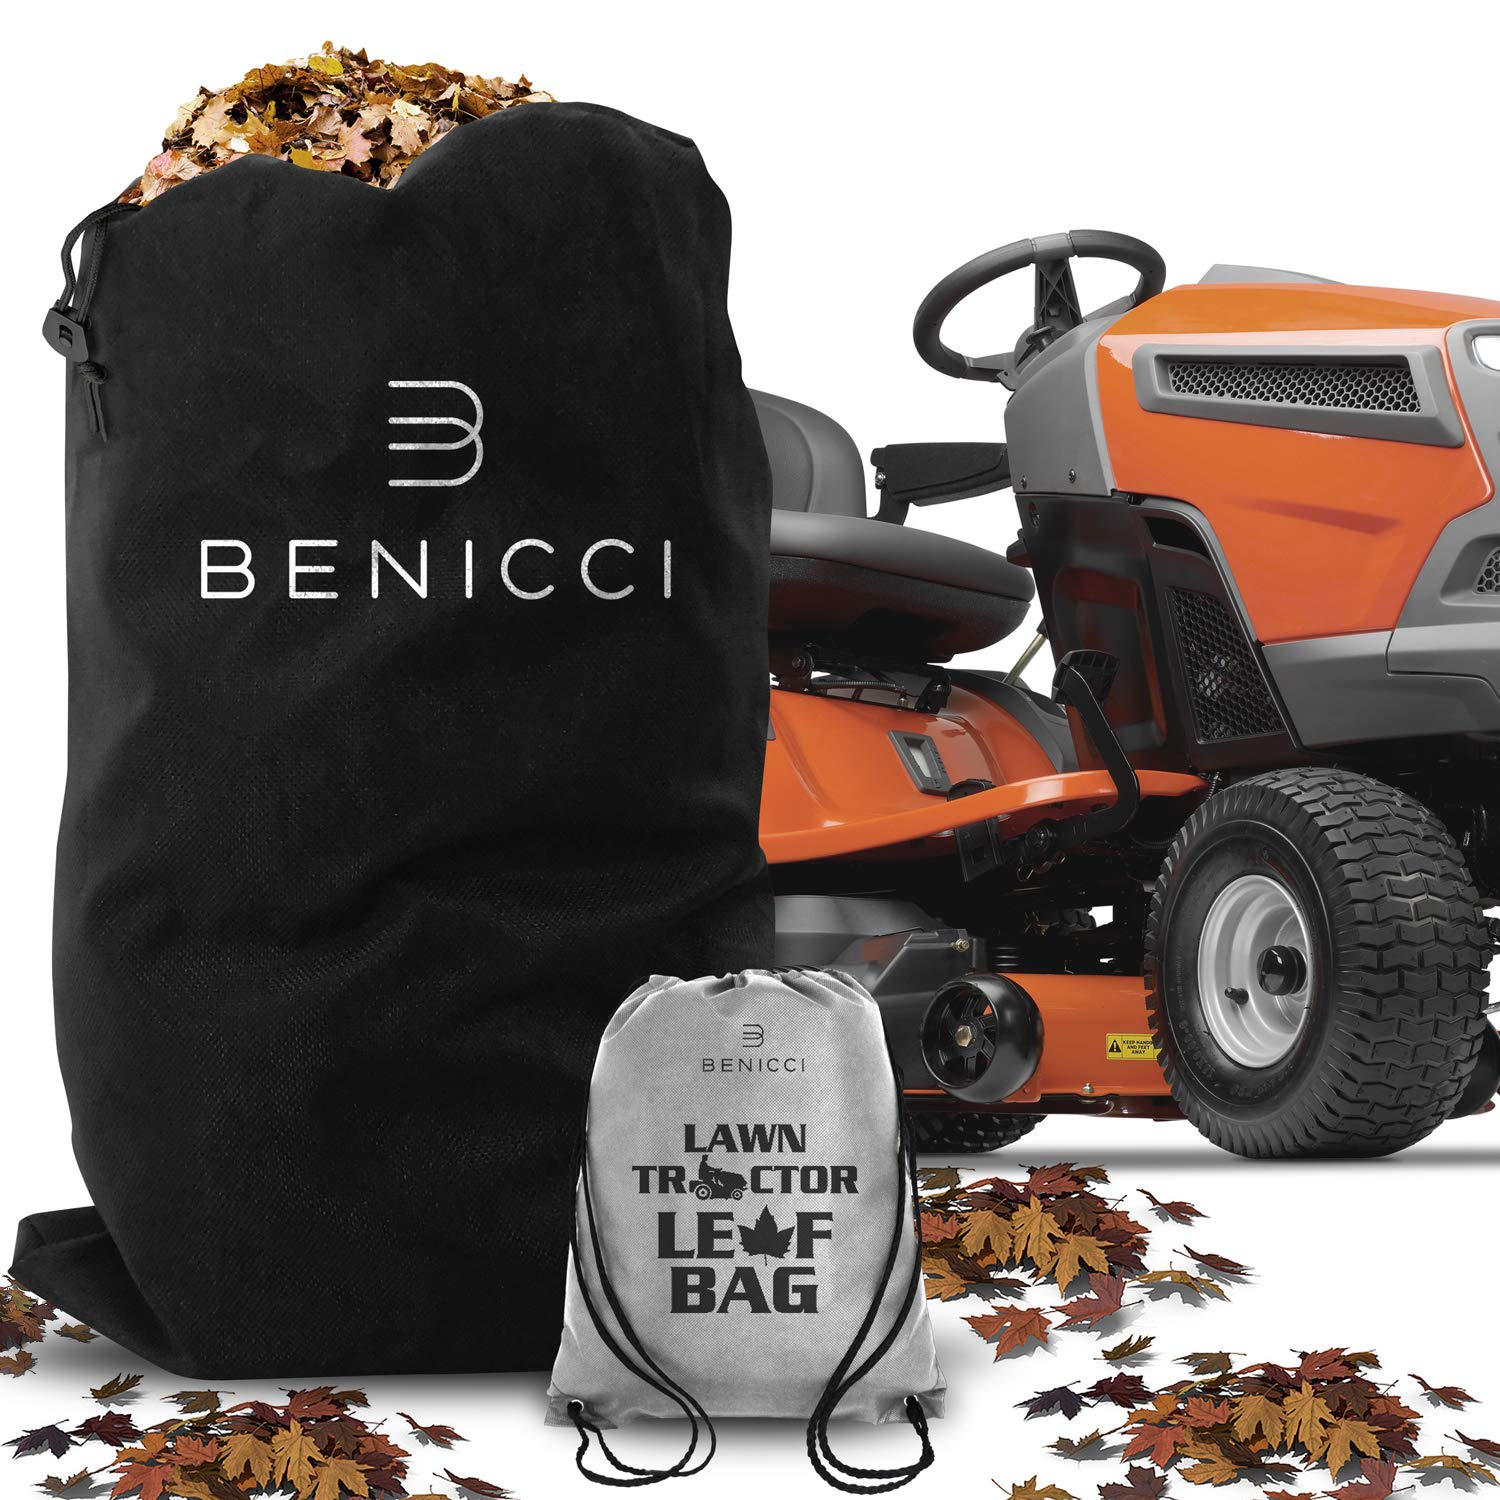 Benicci Lawn Tractor Leaf Bag - Speedy Zipper for Faster Lawn Cleanup - Durable Yard Waste Bag Made to Avoid Tearing from Surface Drag - Suitable for All Lawn Tractors by Benicci